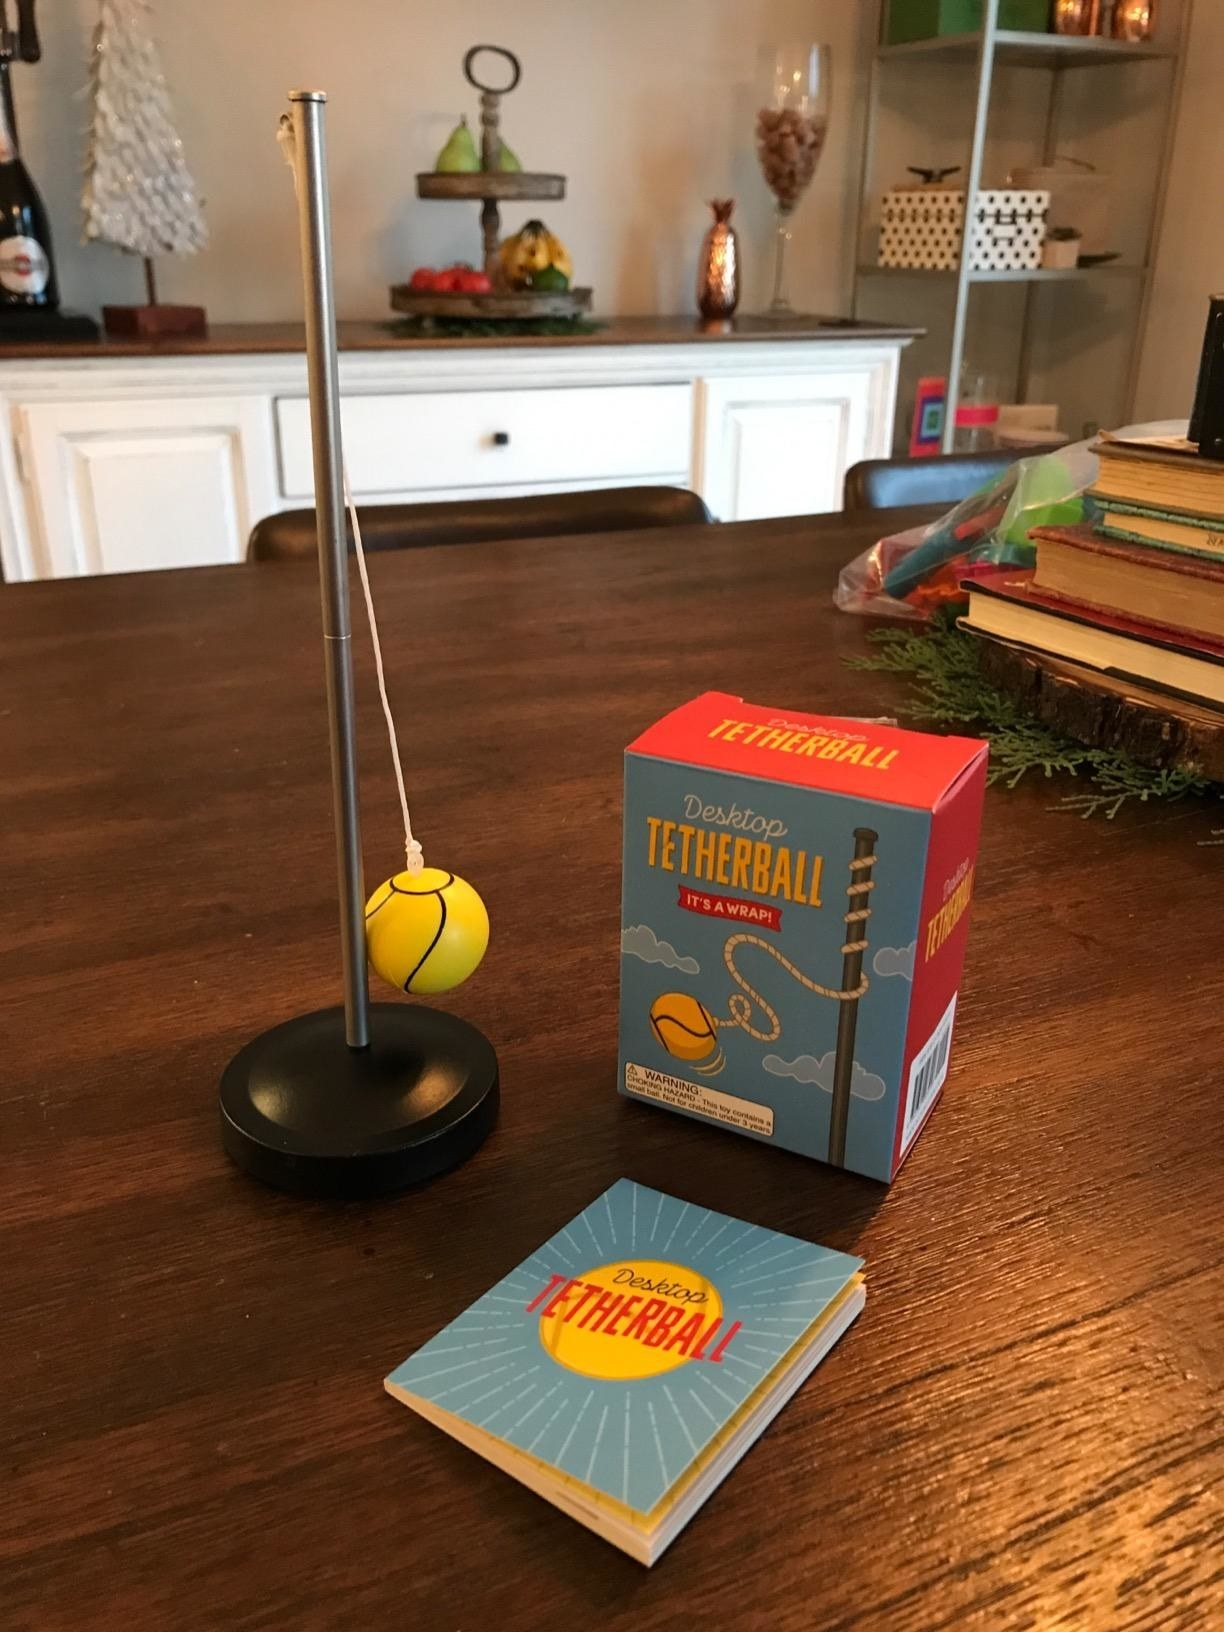 reviewer image of the desktop tetherball and booklet